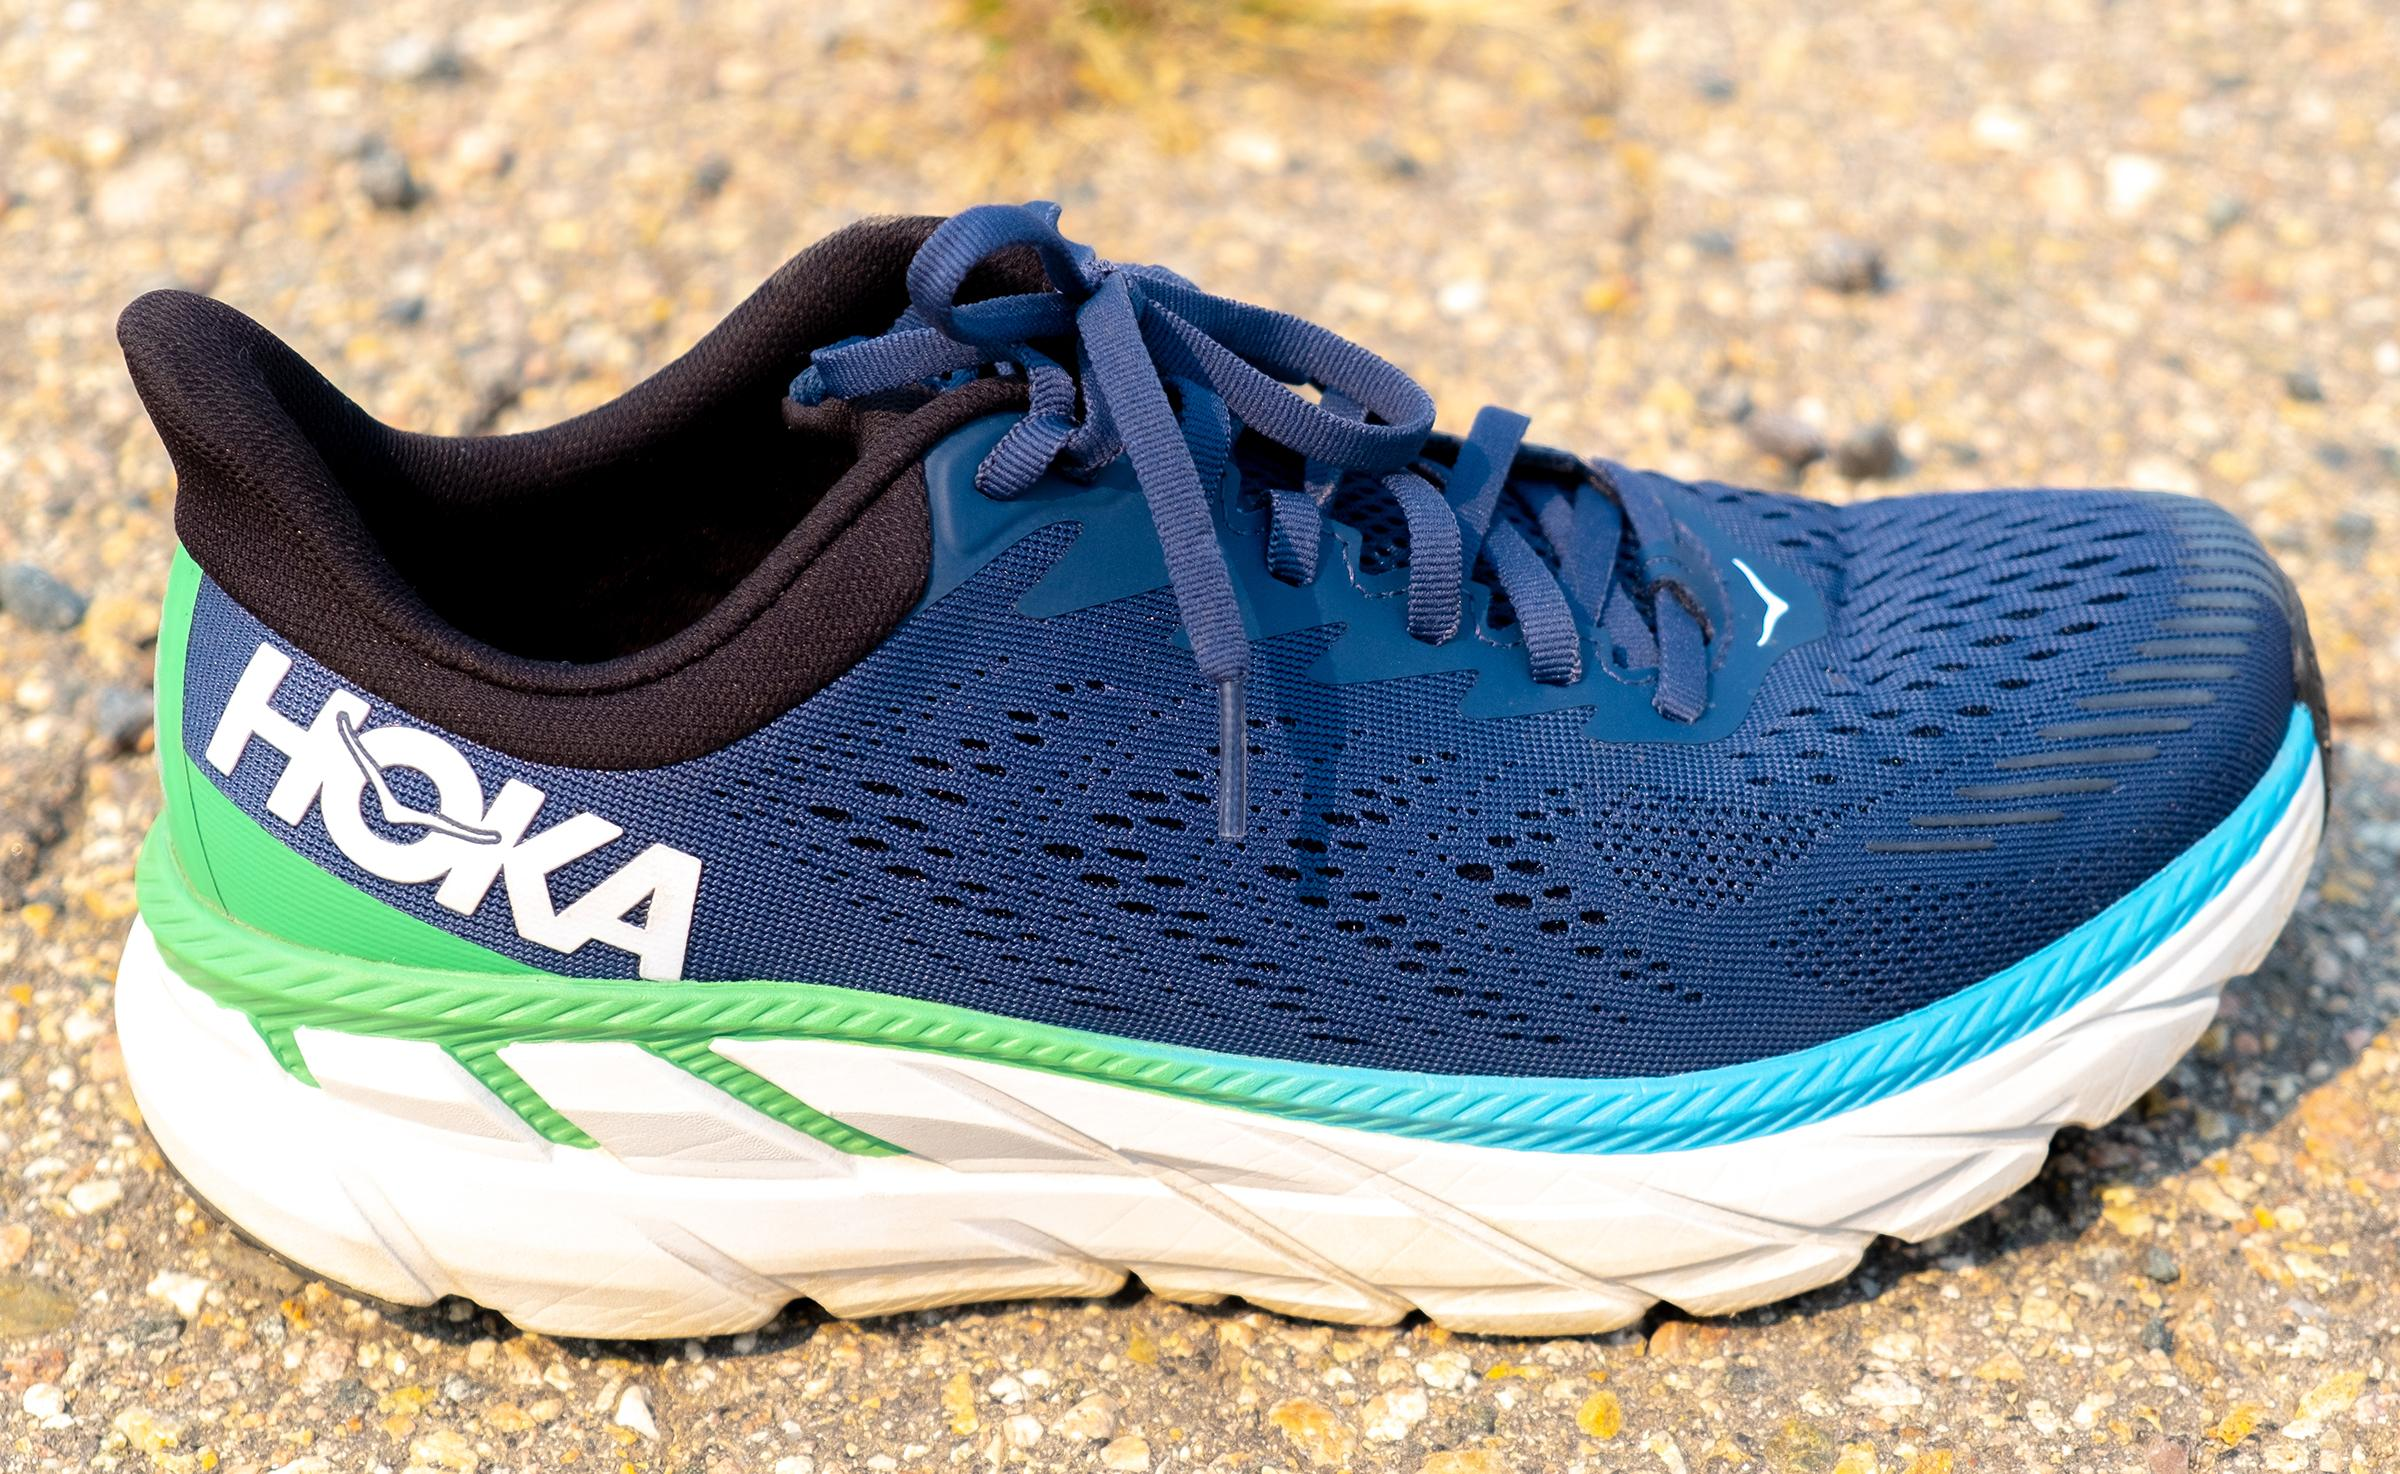 $130 + Review of Hoka One One Clifton 7